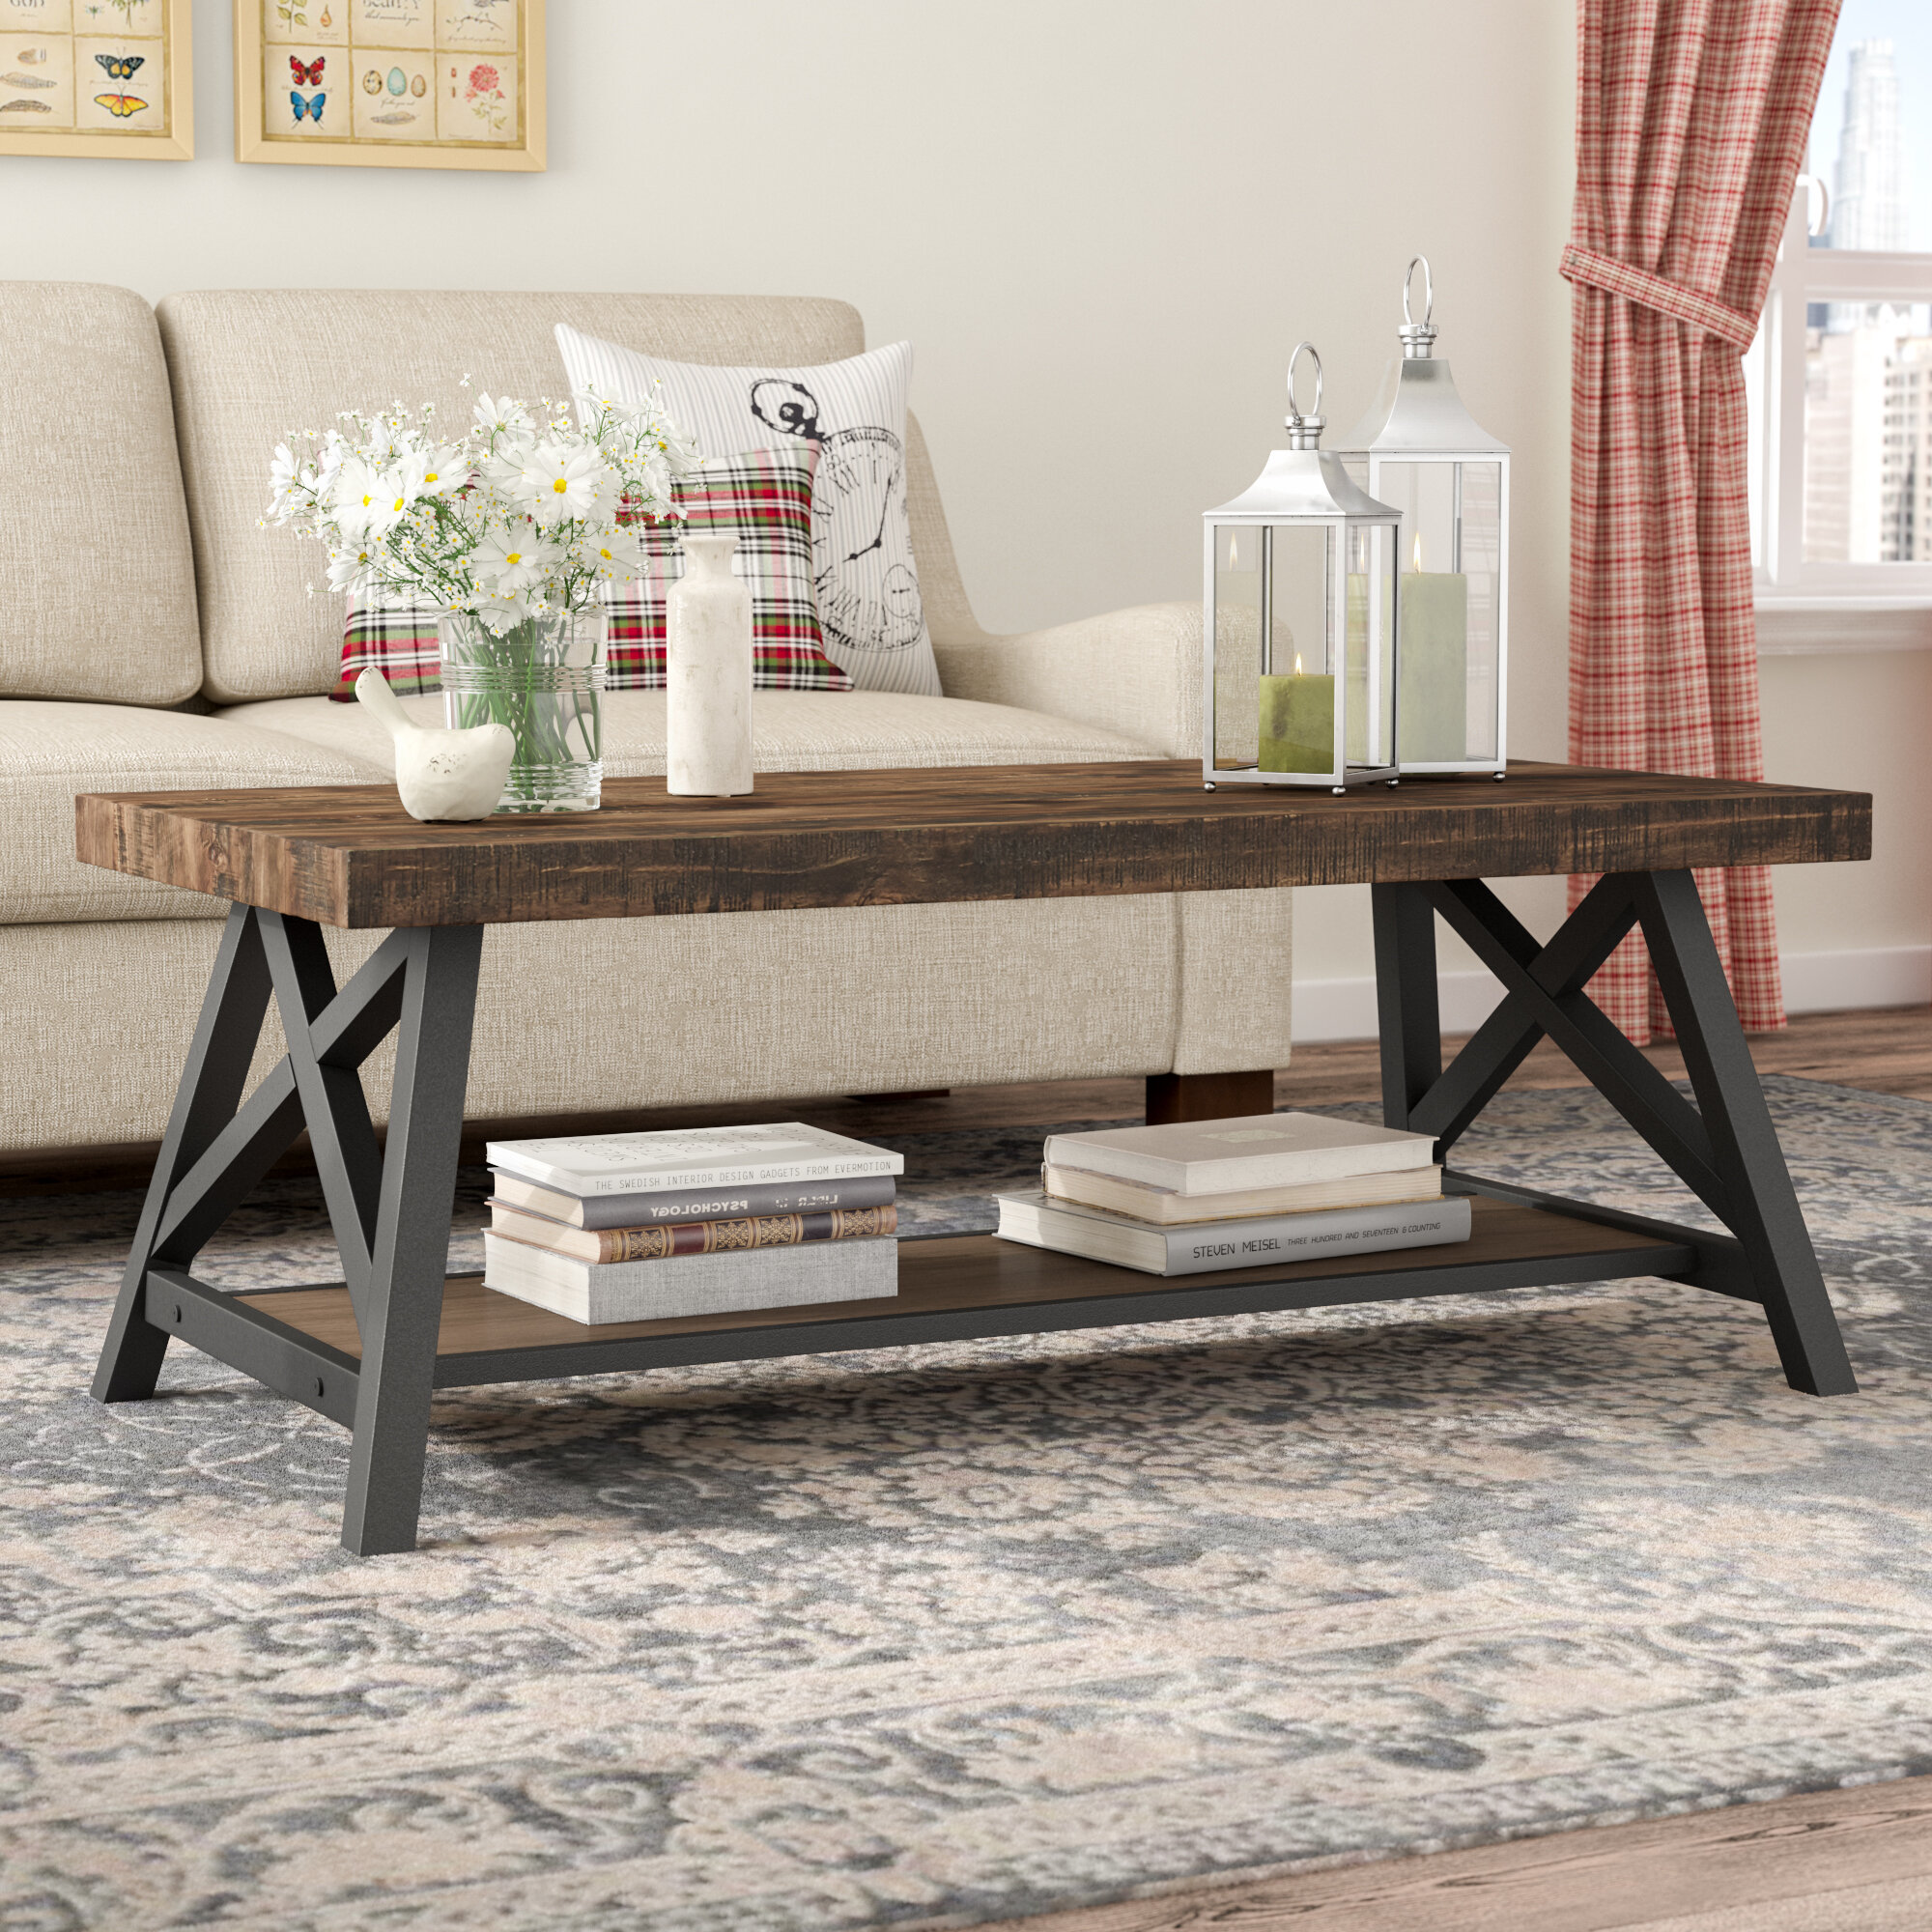 home decor high tone home decor catalogs.htm coffee tables you ll love in 2020 wayfair  coffee tables you ll love in 2020 wayfair